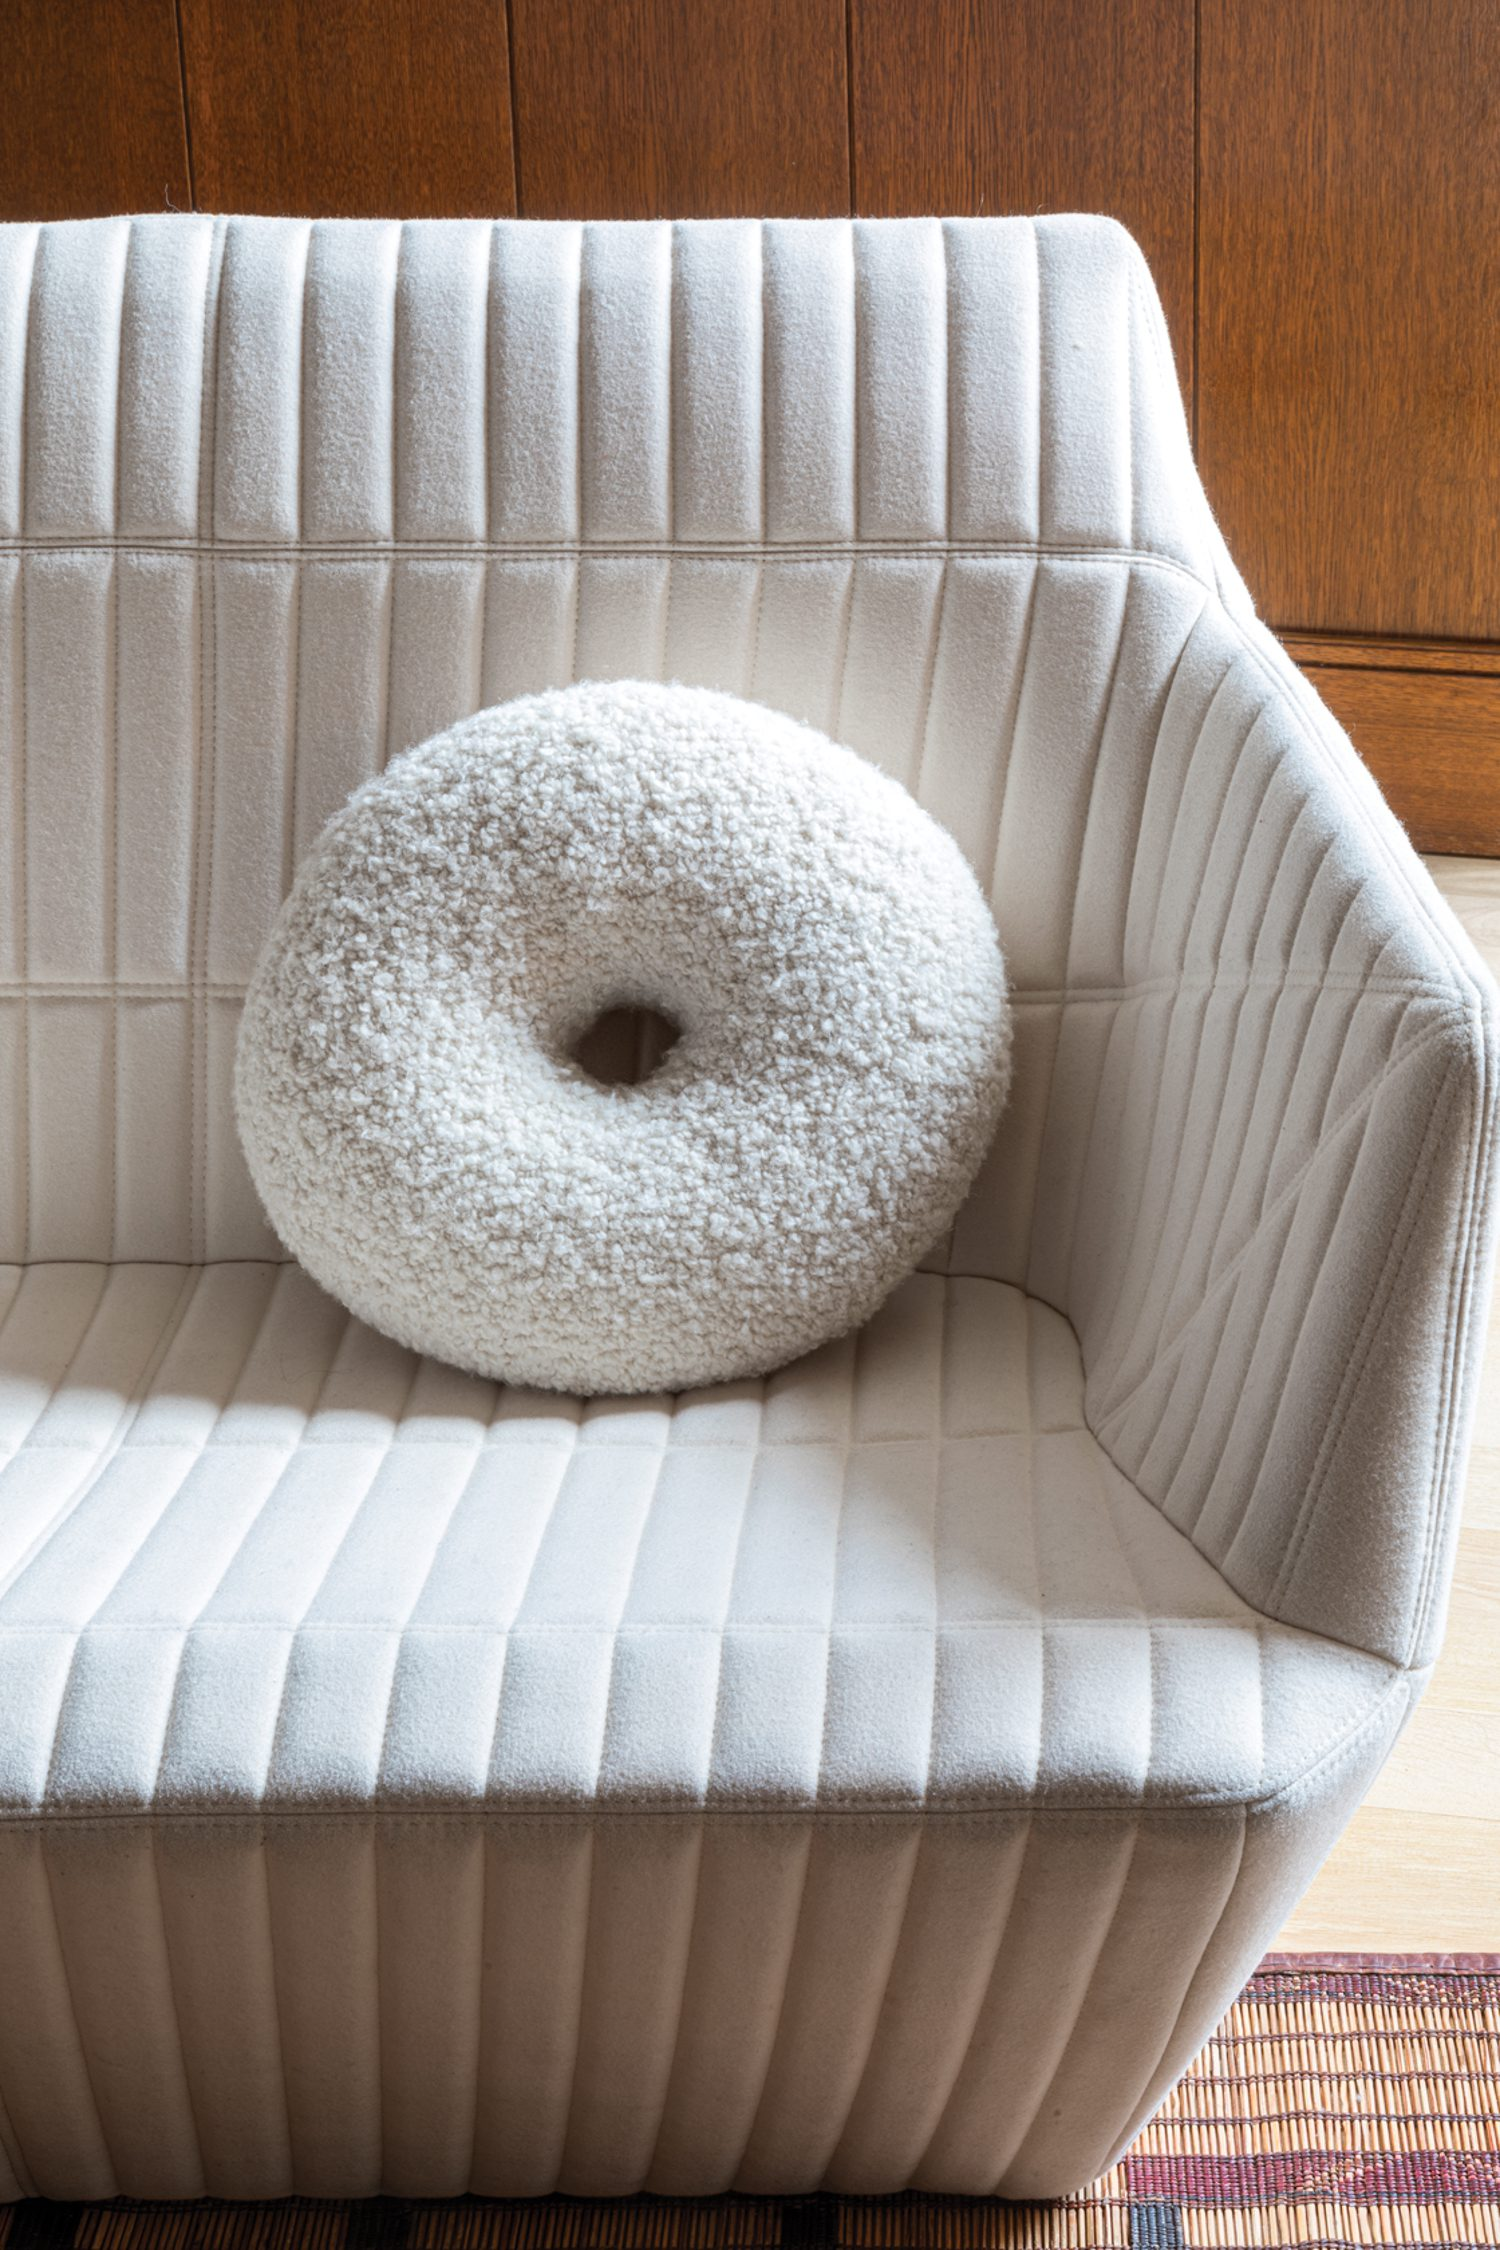 A Baba cushion by Emmanuelle Simon accents the sitting room sofa.